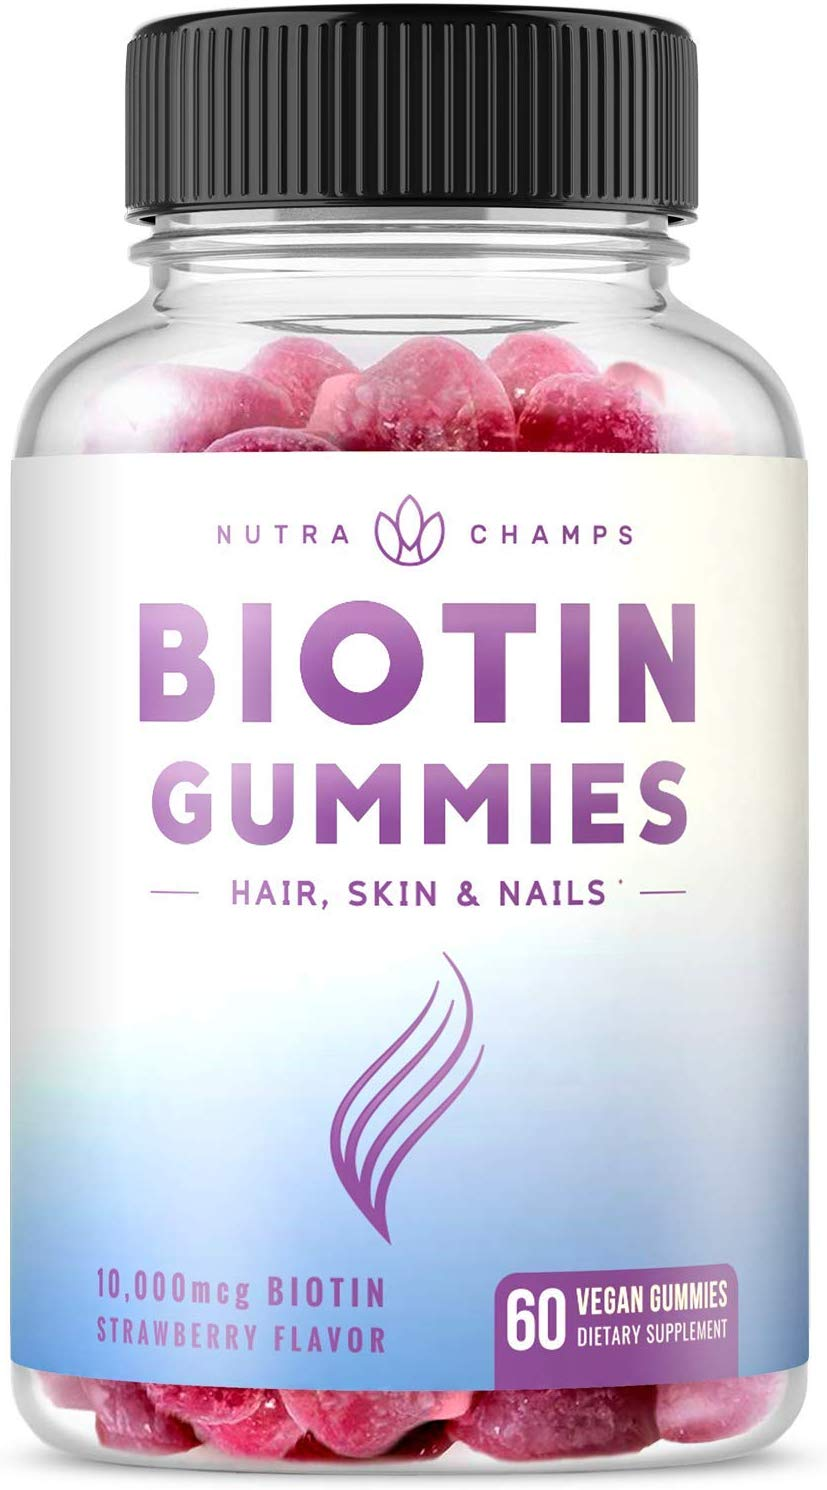 NutraChamps Biotin Gummies, 10,000mcg